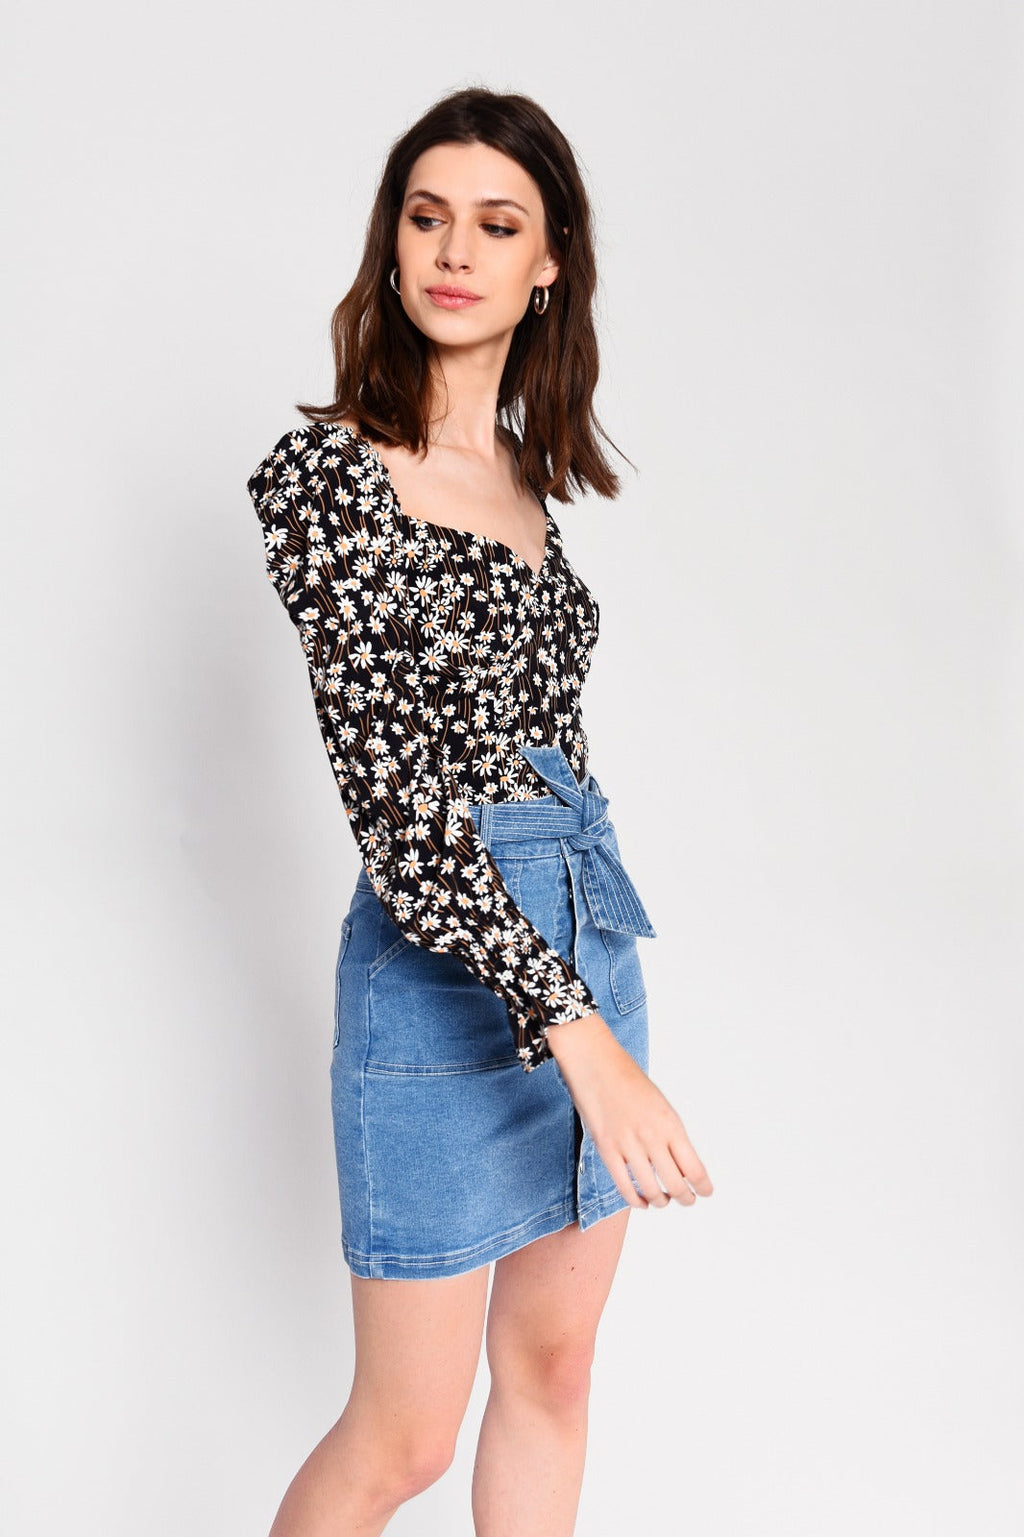 coco boutique, coco boutique top, Channel a look that is both feminine and floral in our latest all over daisy printed blouse. Ditsy and destined to make a fashionable impact, pair yours with your favourite denim skirt or jeans.